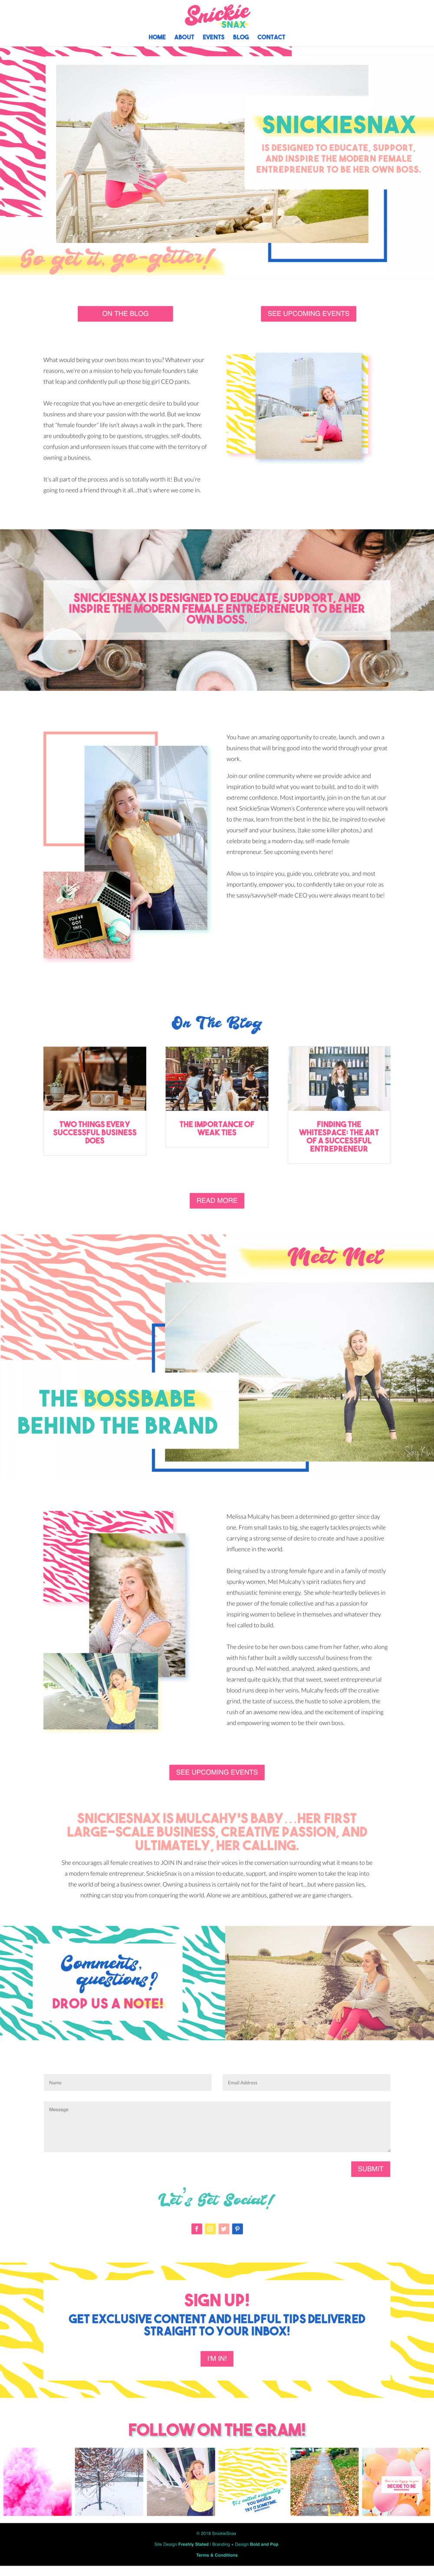 Bold & Pop : SnickieSnax Branding Logo Design, Website Graphics, Mailchimp Template Design and Social Media Consulting Case Study